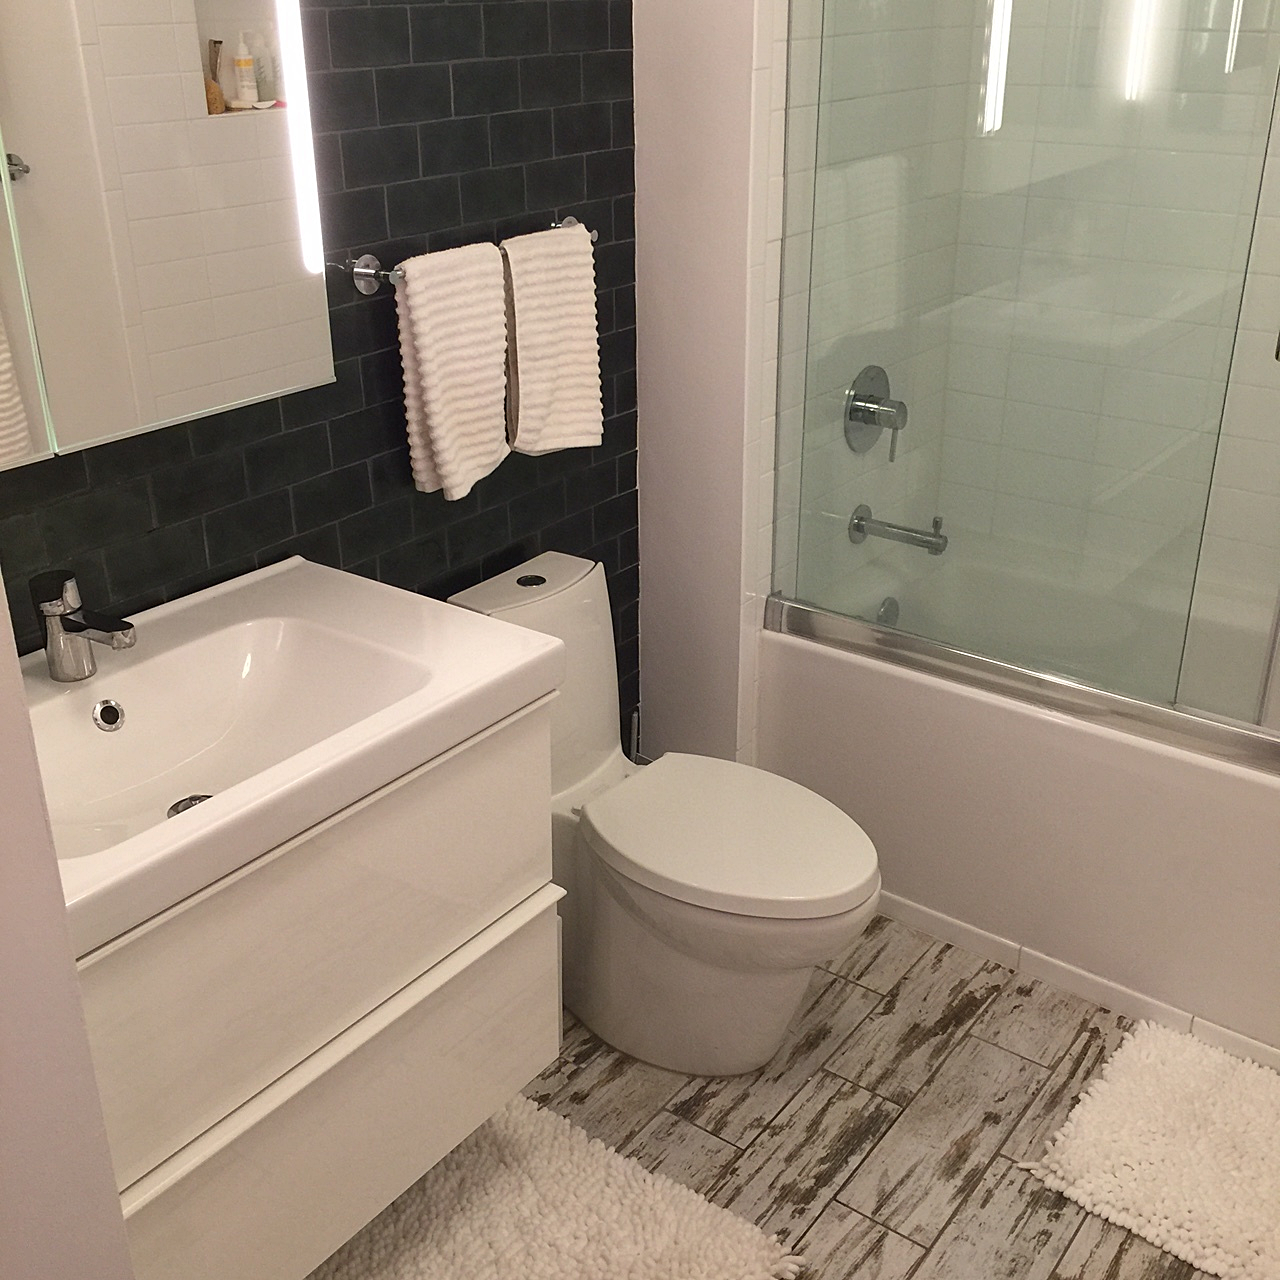 A new wall-mounted vanity, tile, lighting, and plumbing fixtures modernize the bathroom